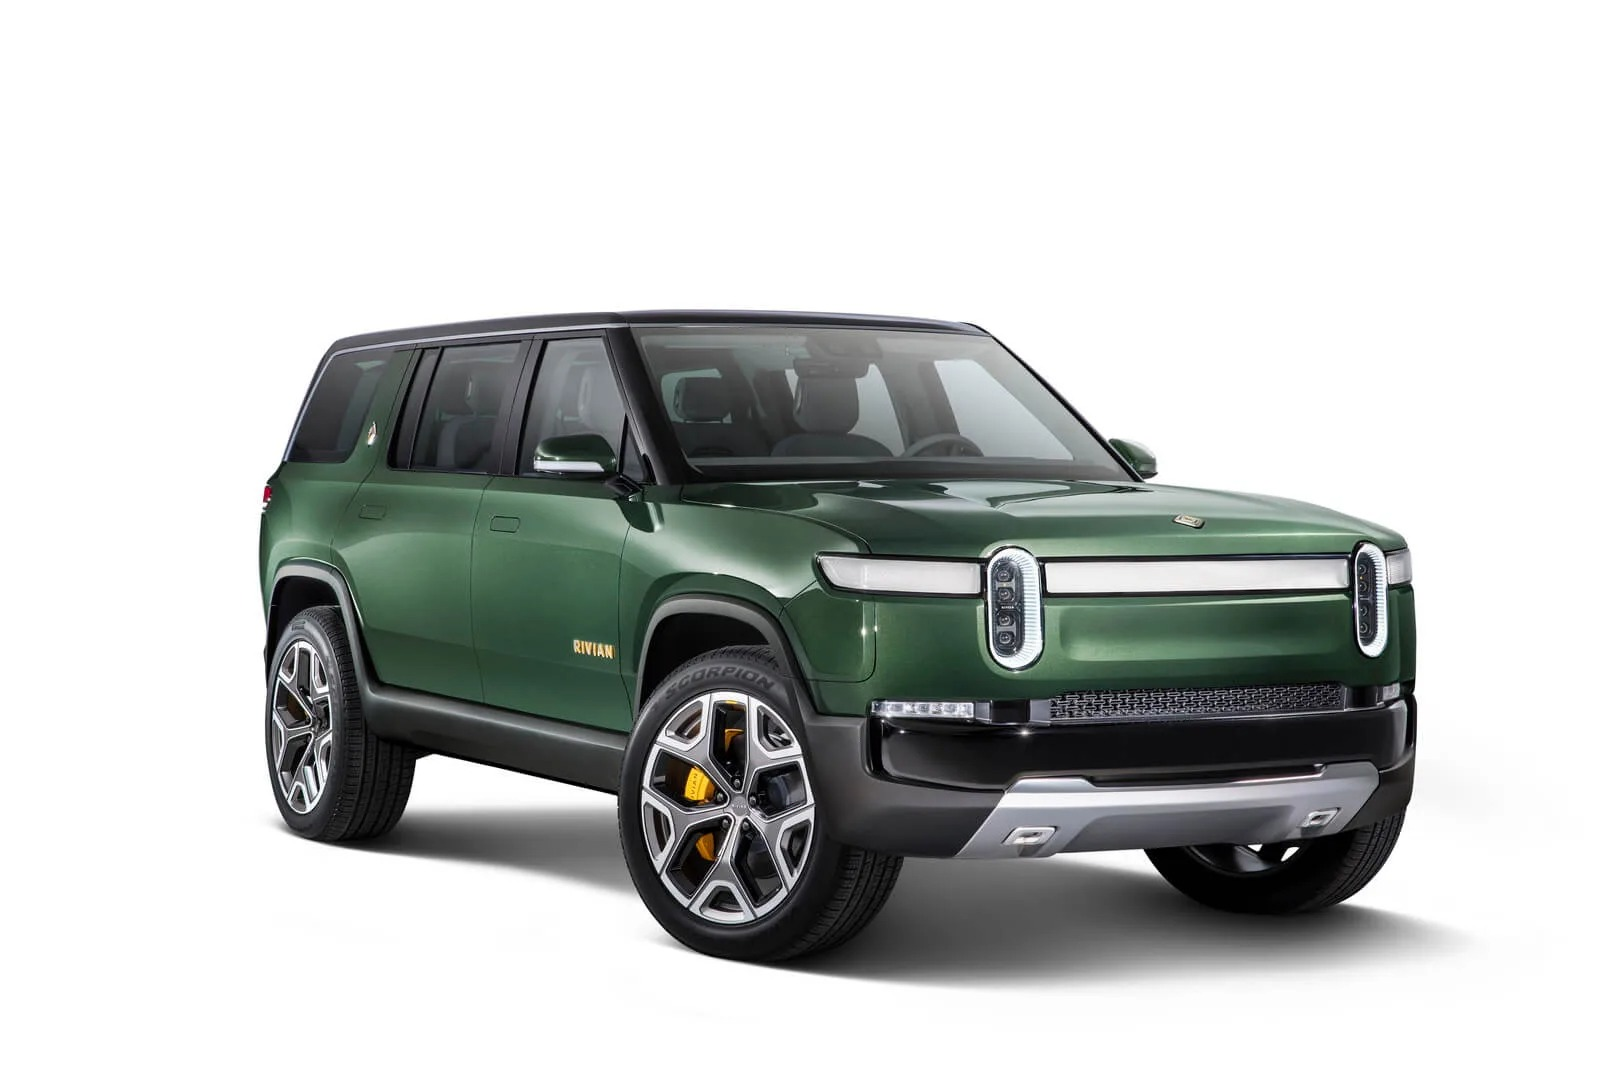 RJ Scaringe, founder and CEO of U.S.-based automaker Rivian, has officially confirmed the rumors that the company was searching for a suitable manufacturing site in Europe not long ago. He also shed light on some of its plans.